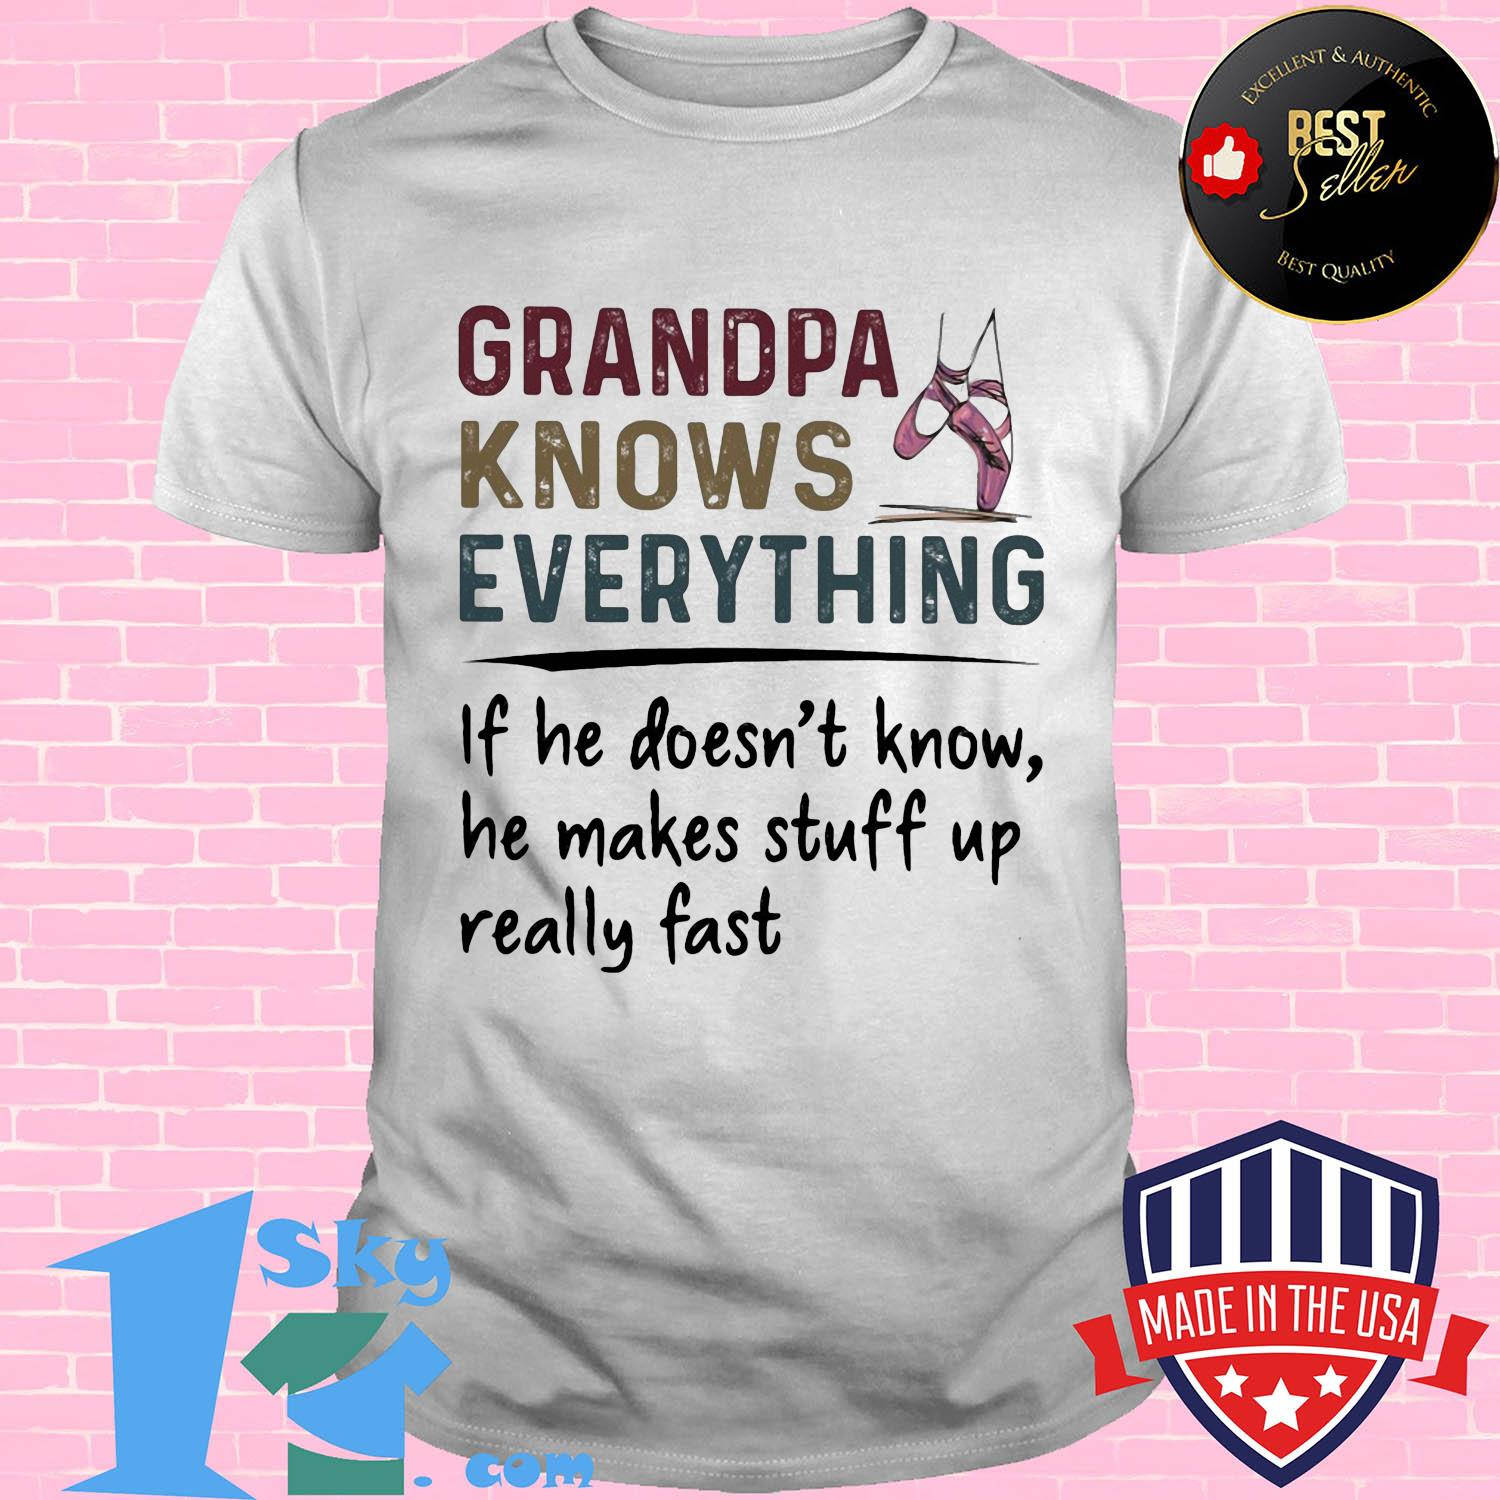 Ballet grandpa knows everything if he doesn't know he makes stuff up really fast shirt